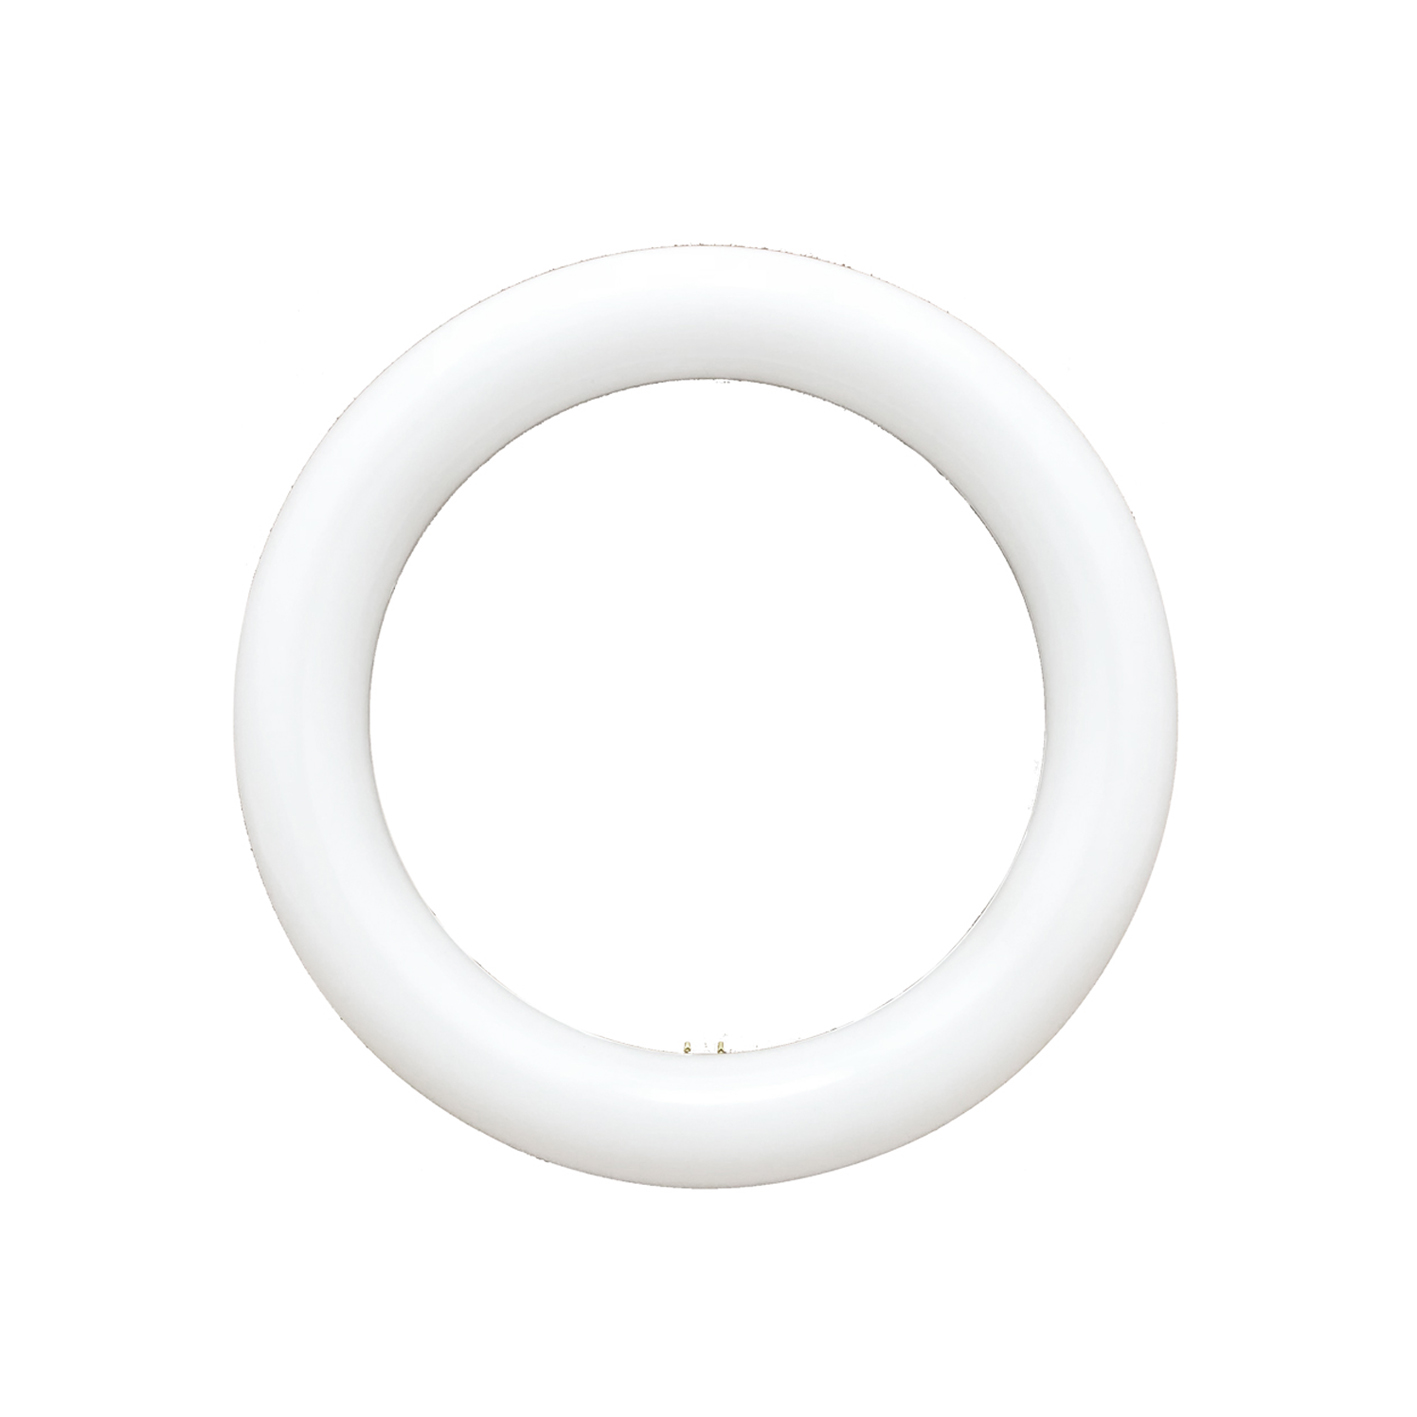 Circolina LED Circular Tube T9 G10q 15w diameter 215 mm T9-15W